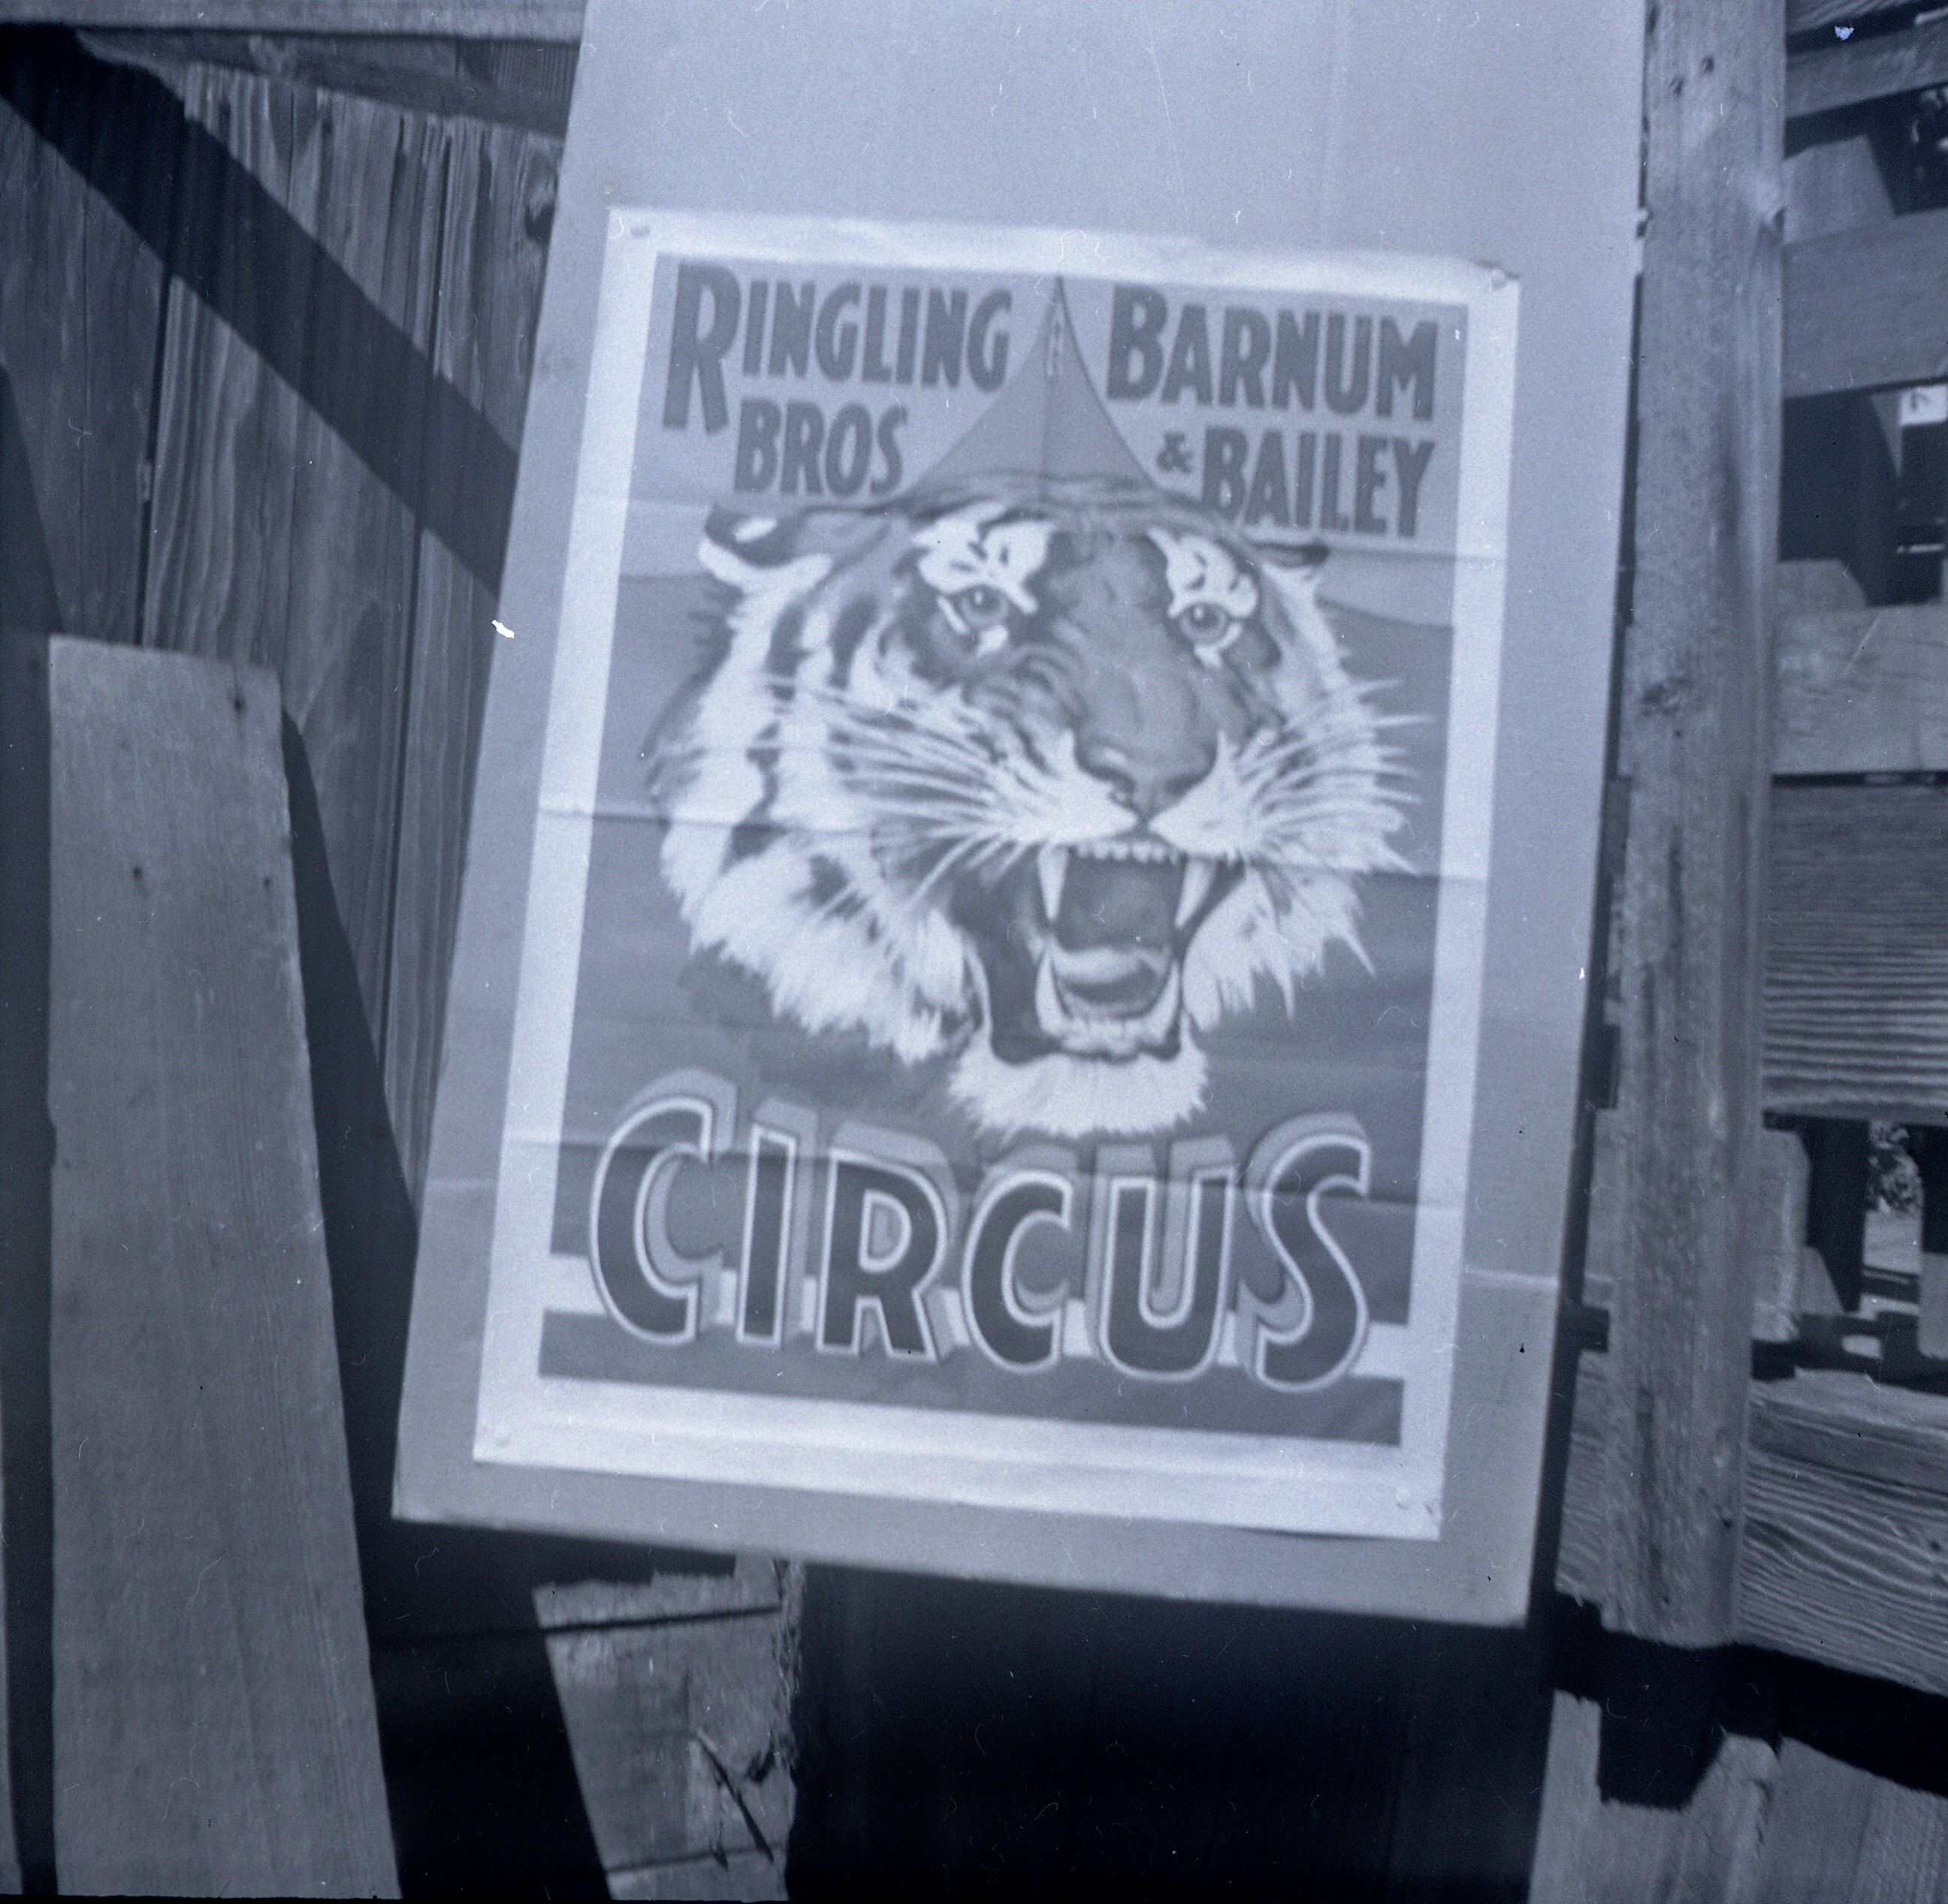 Ringling Bros  Barnum and Bailey  Tiger  Poster 2 neg Dup Posted 1 of 13